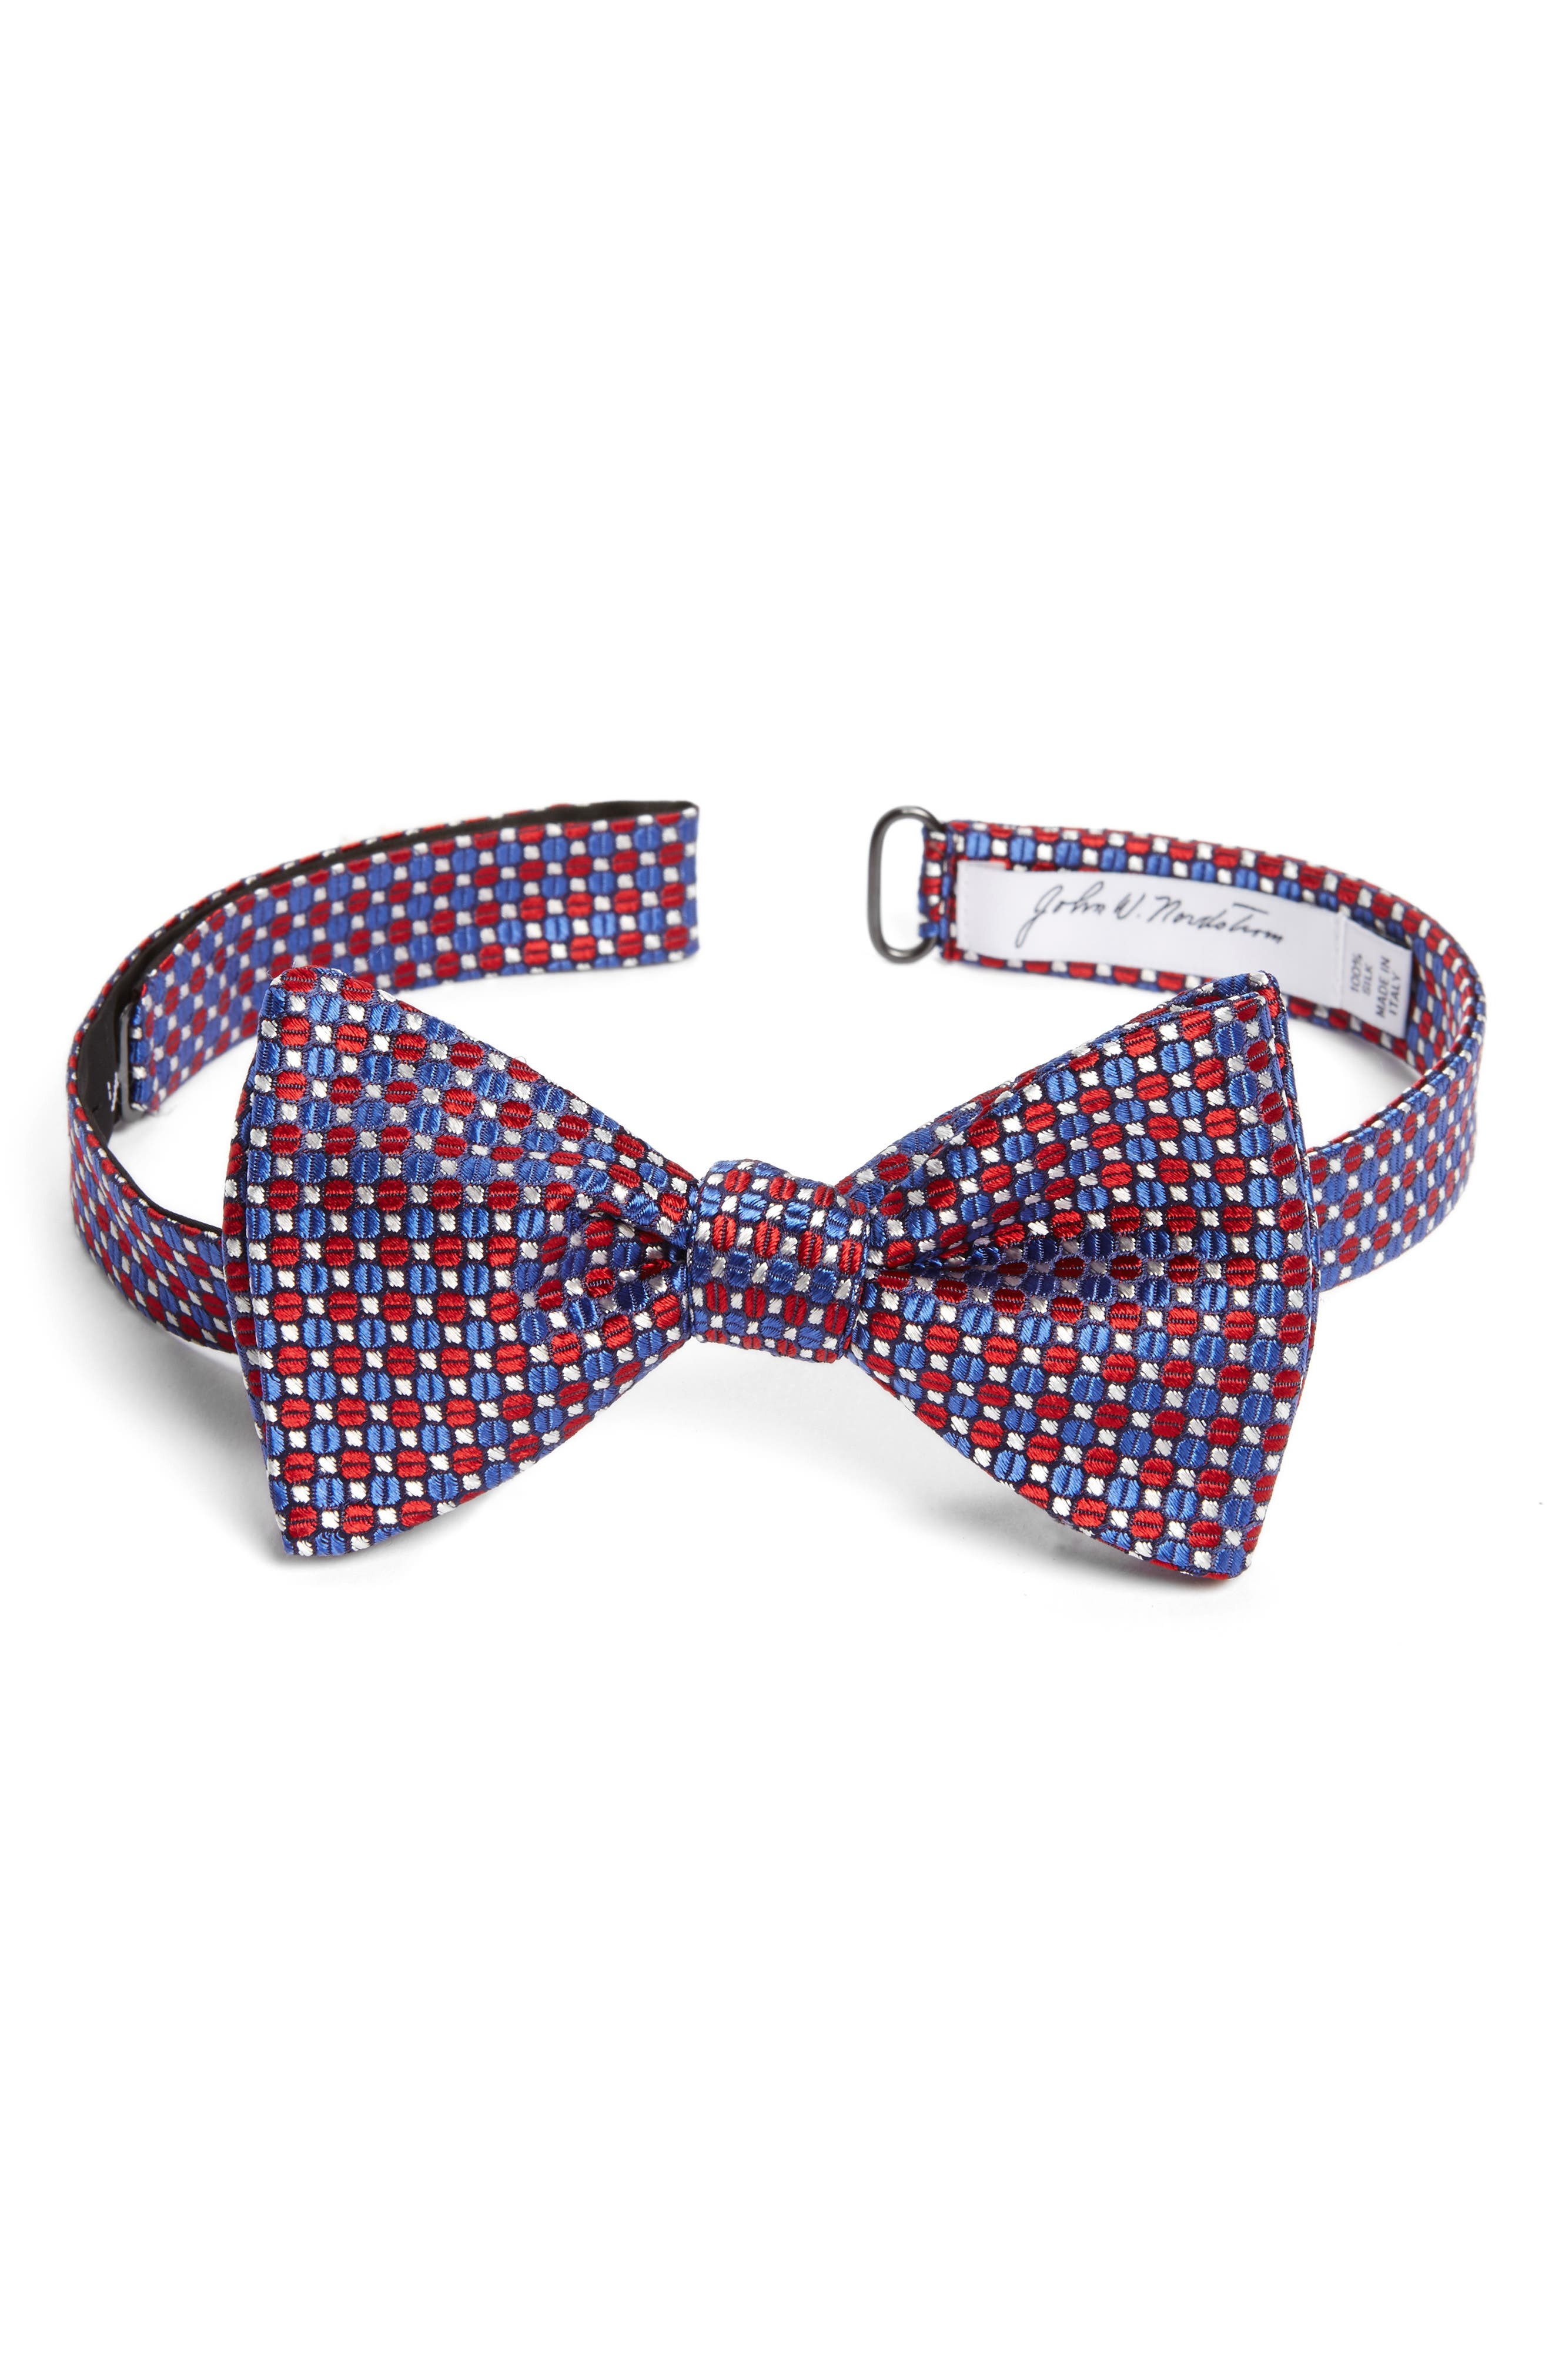 Mens john w nordstrom bow ties self tying traditional mens john w nordstrom bow ties self tying traditional nordstrom ccuart Images